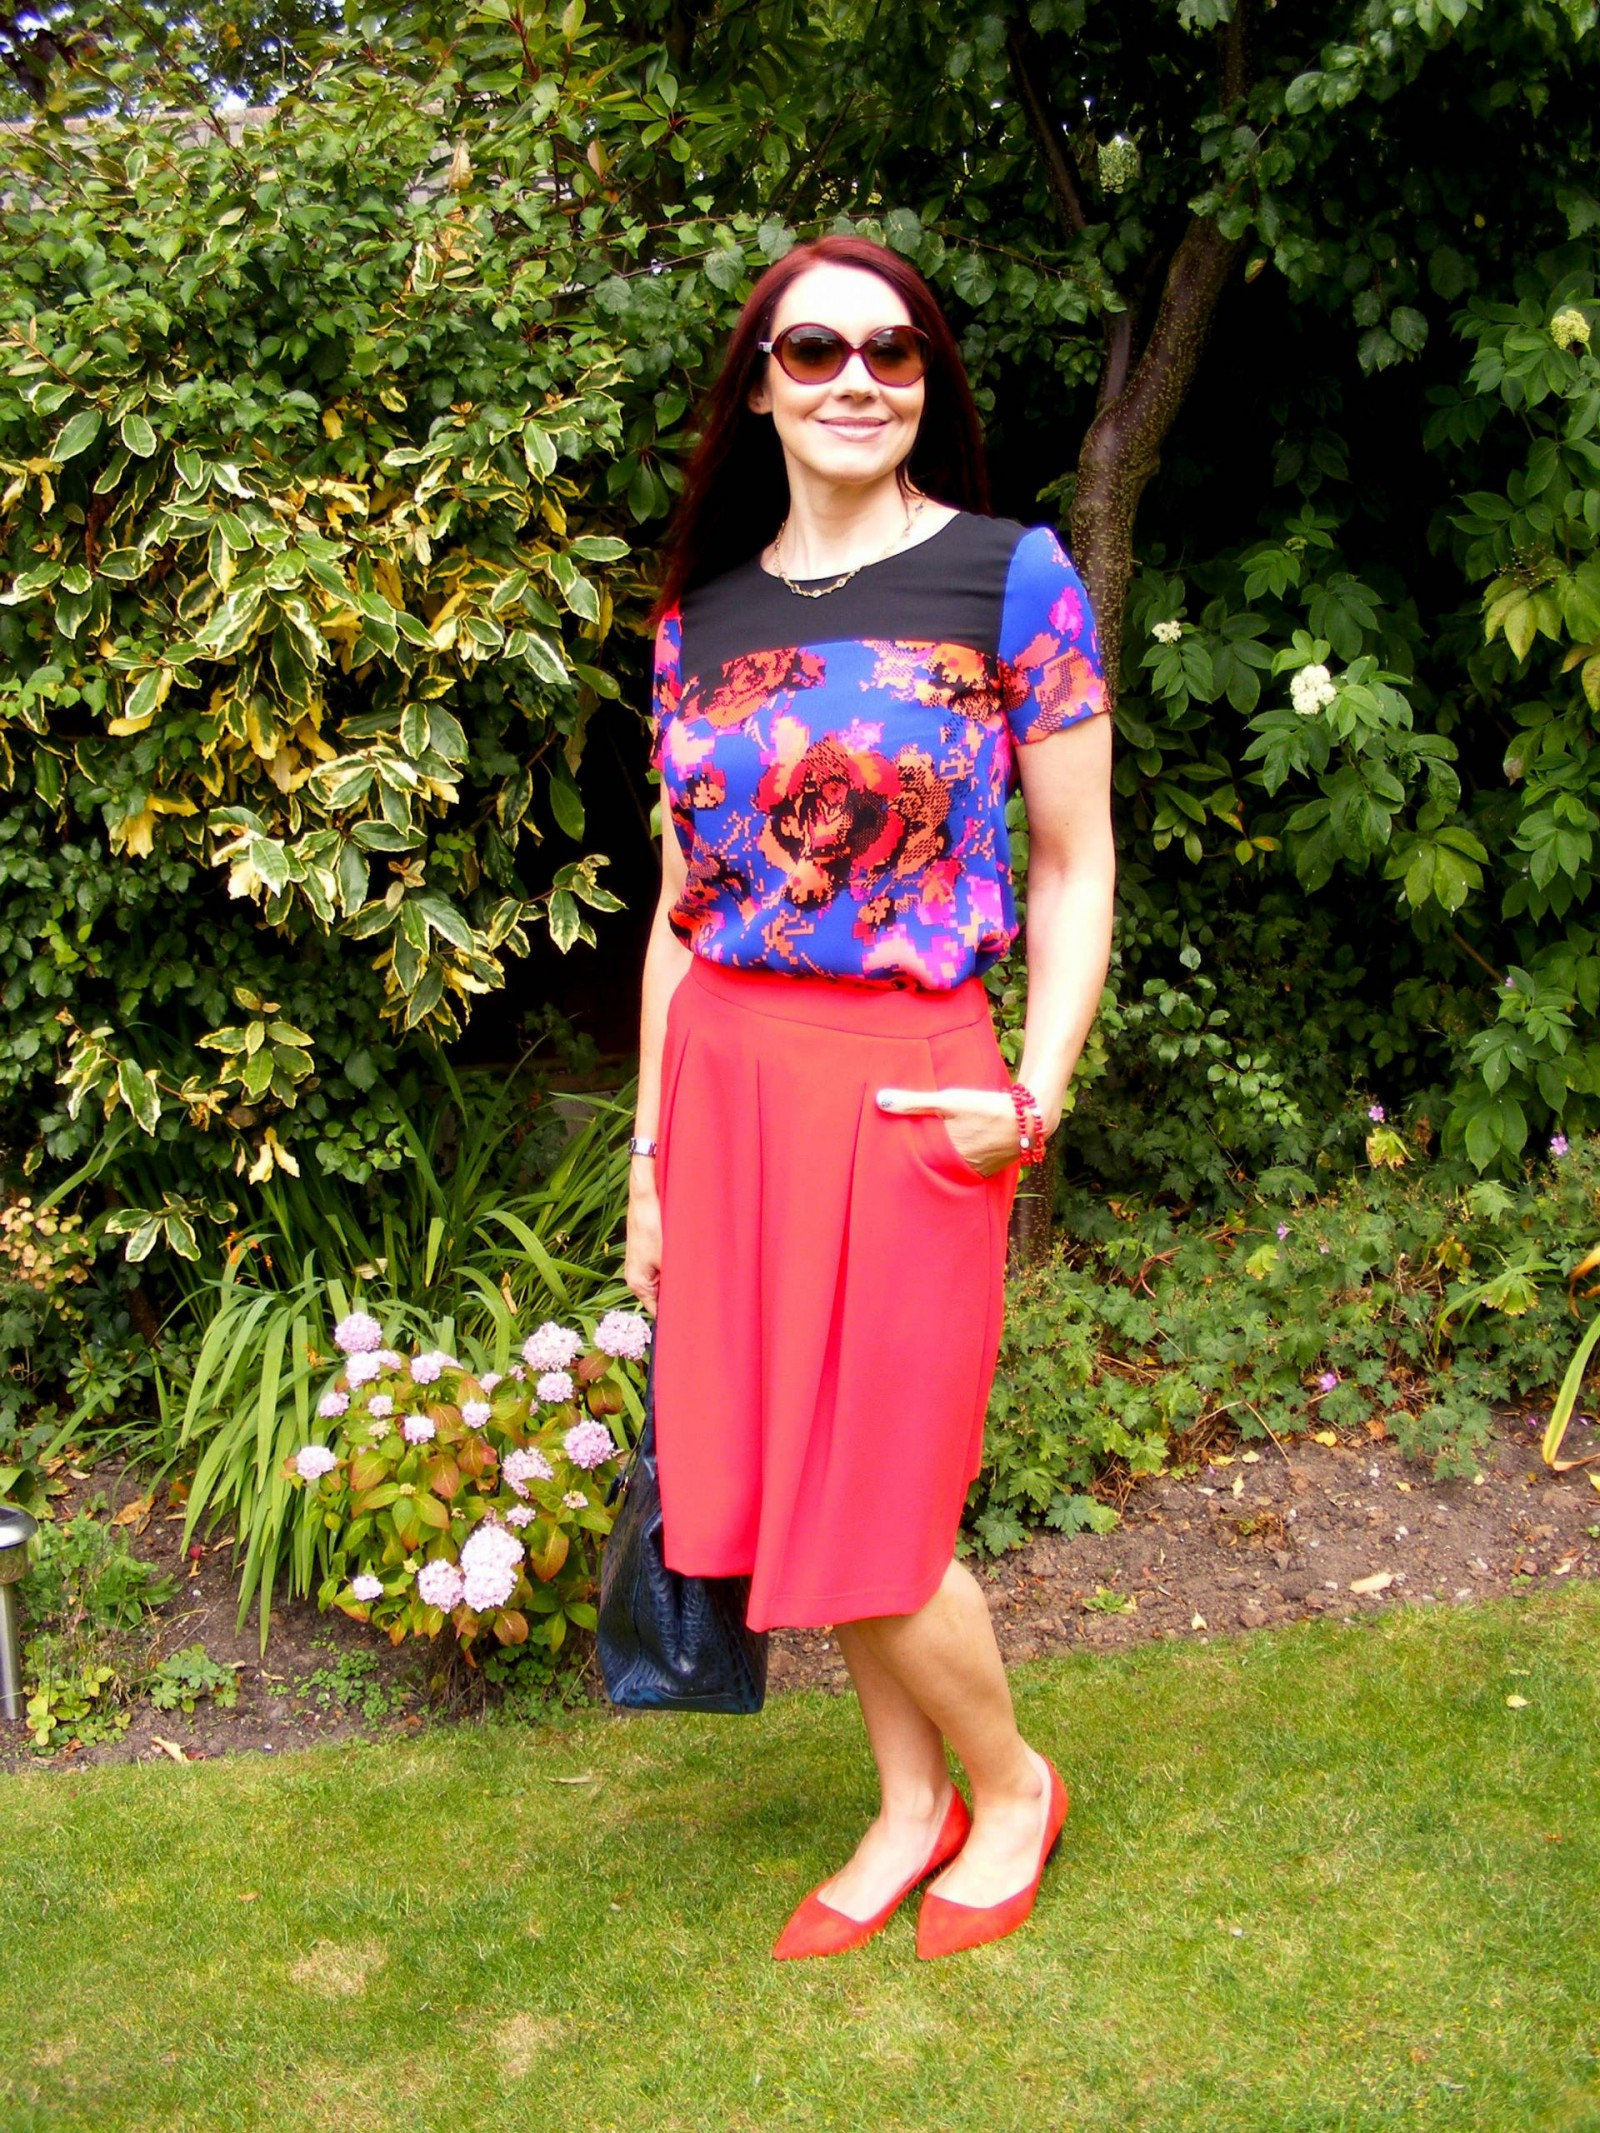 Marks & Spencer pixel print top and red Buttonsafe skirt